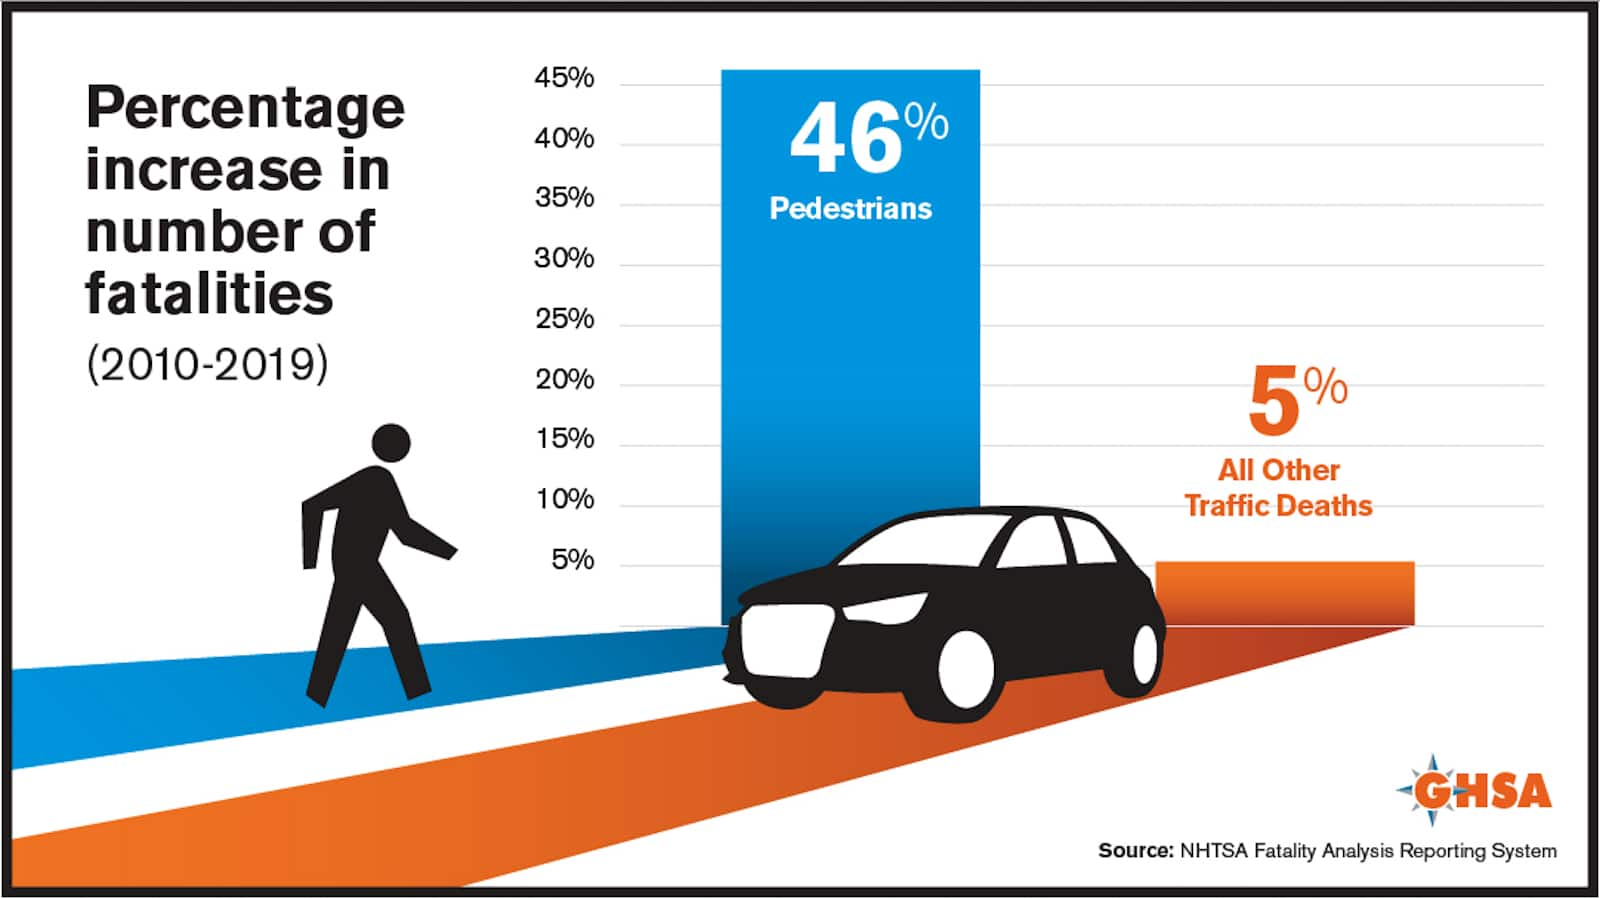 Percentage increase in fatality numbers graphic